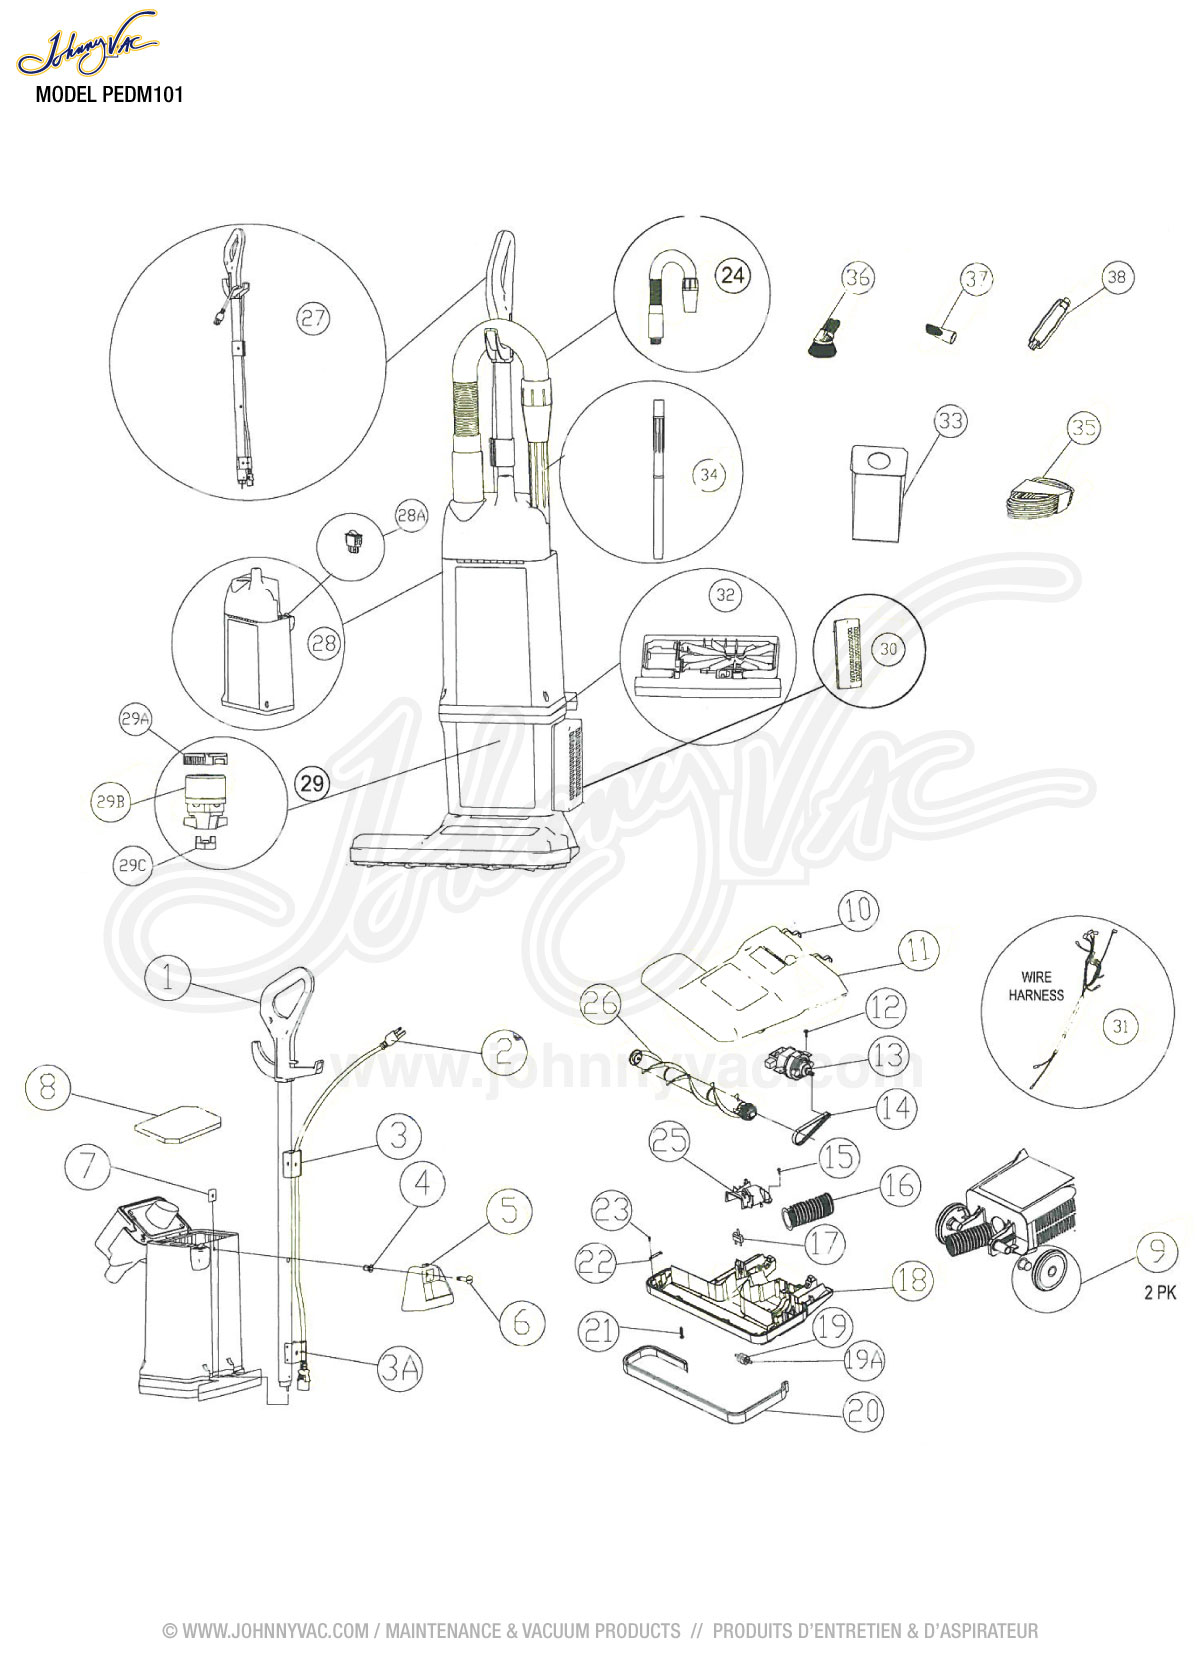 Vacuum schematic exploded view for dm101 models dm101 electrolux canister vacuum parts diagram